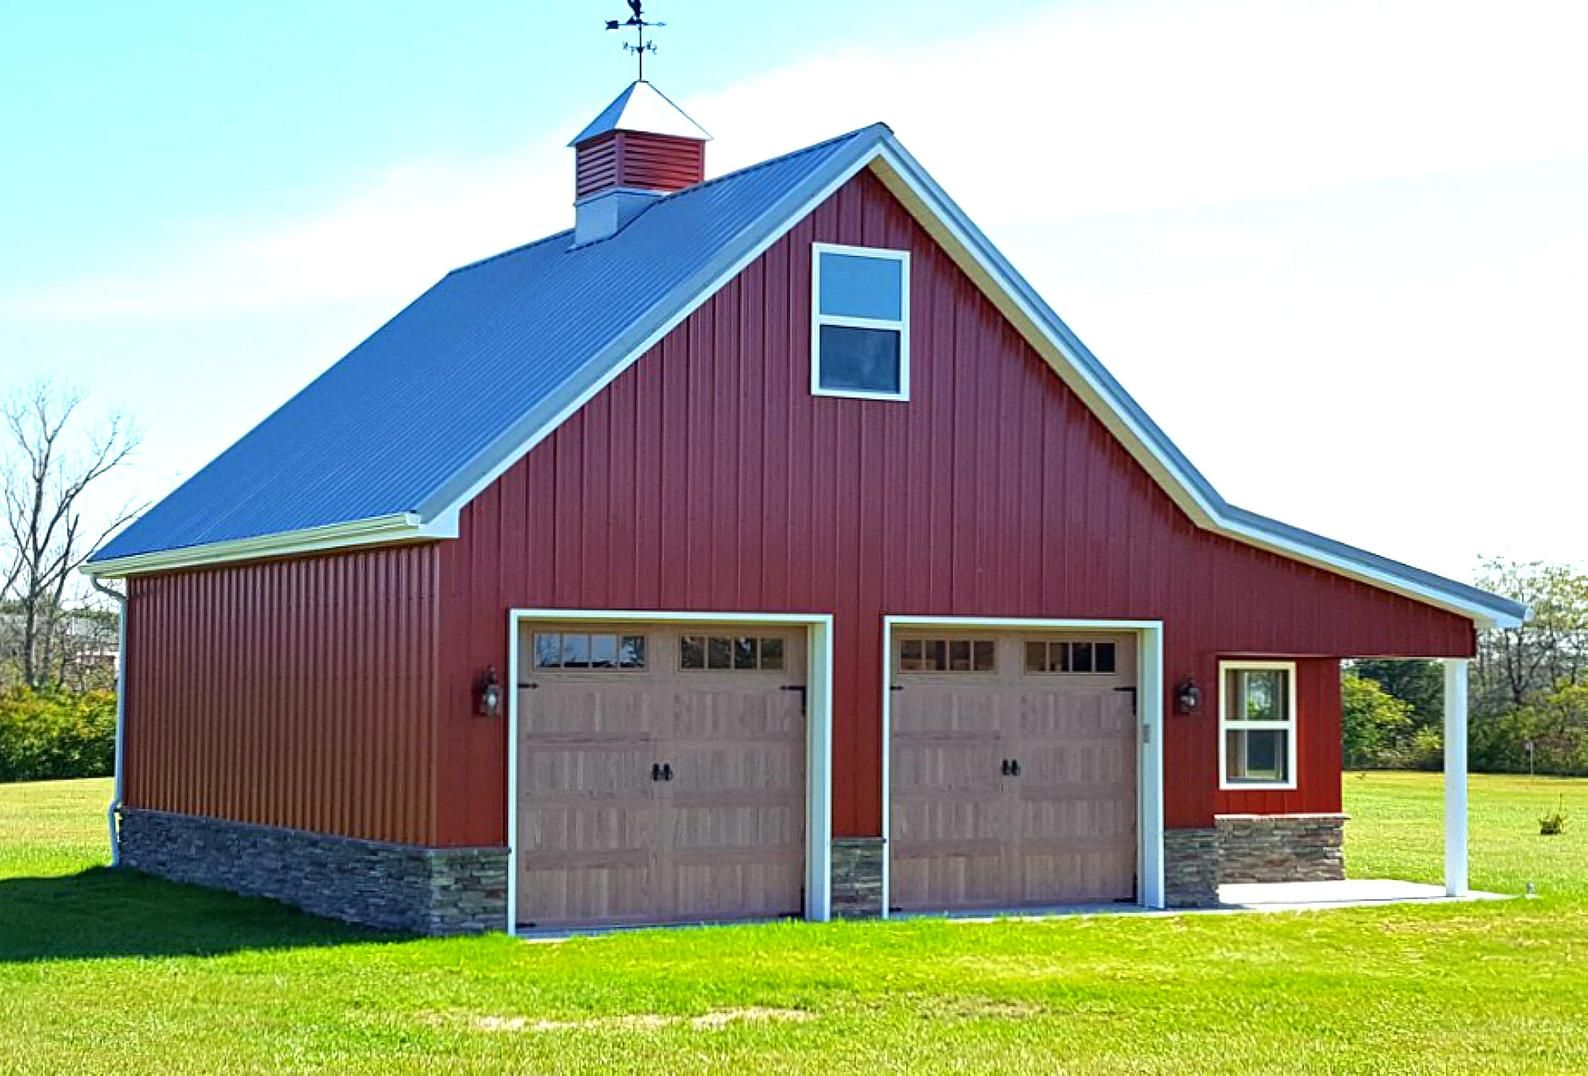 29 Country Garages with Lofts - Complete Pole-Barn Construction Plans